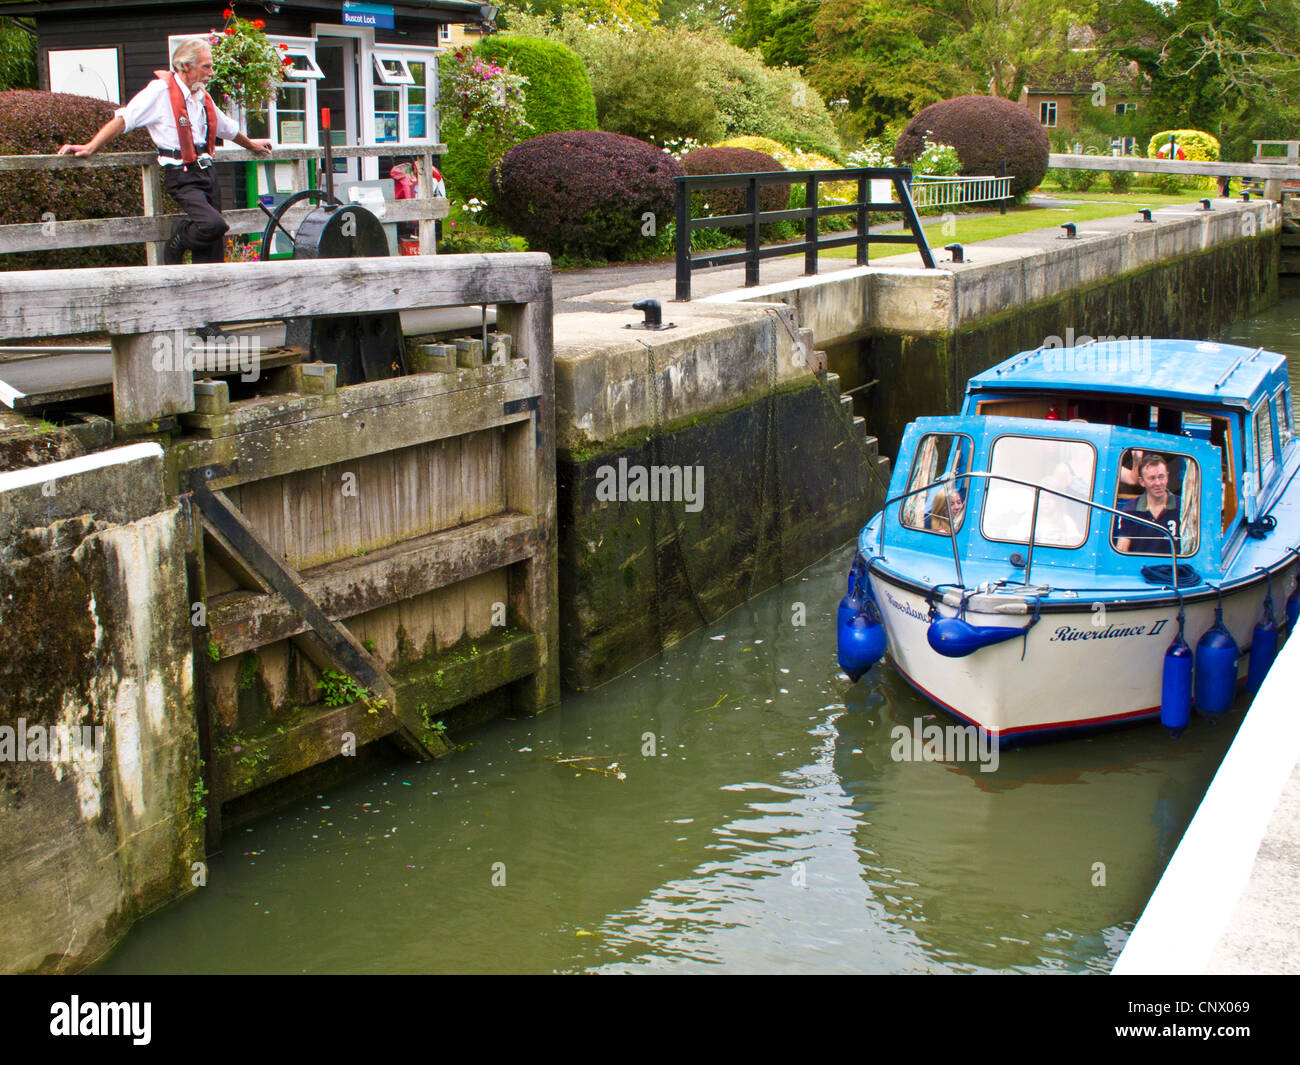 A motor cruiser passing through Buscot Lock, the smallest on the river Thames at Buscot Weir, Oxfordshire, England, Stock Photo